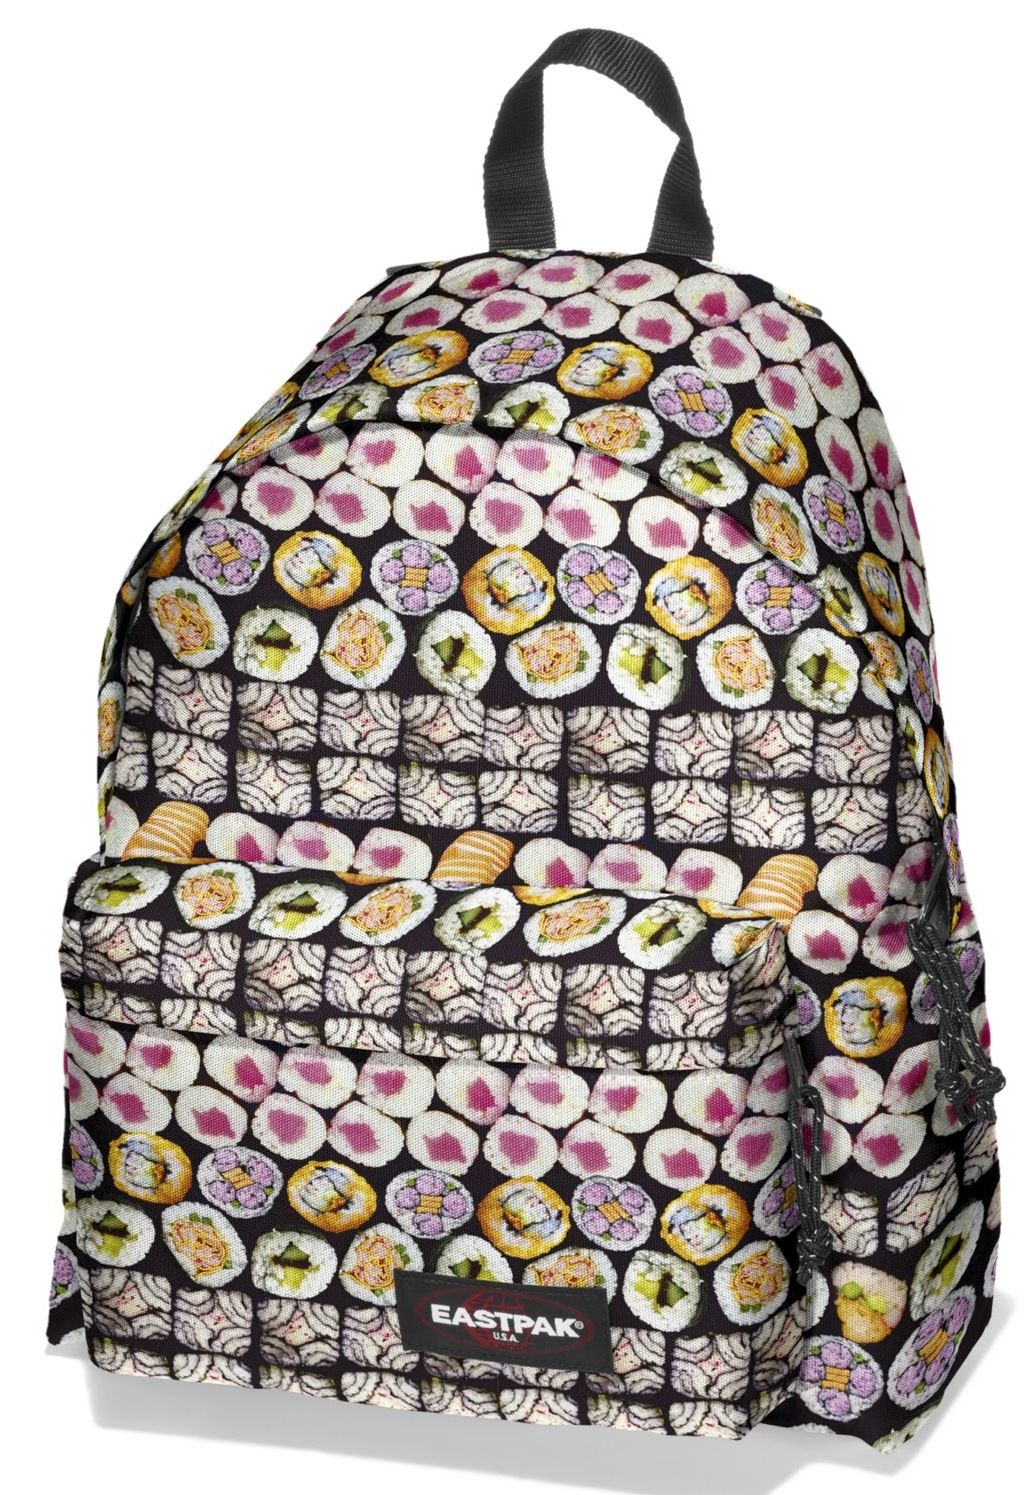 Eastpak Padded Sac à Dos Pack'R 51s Little Bow | Sac a dos